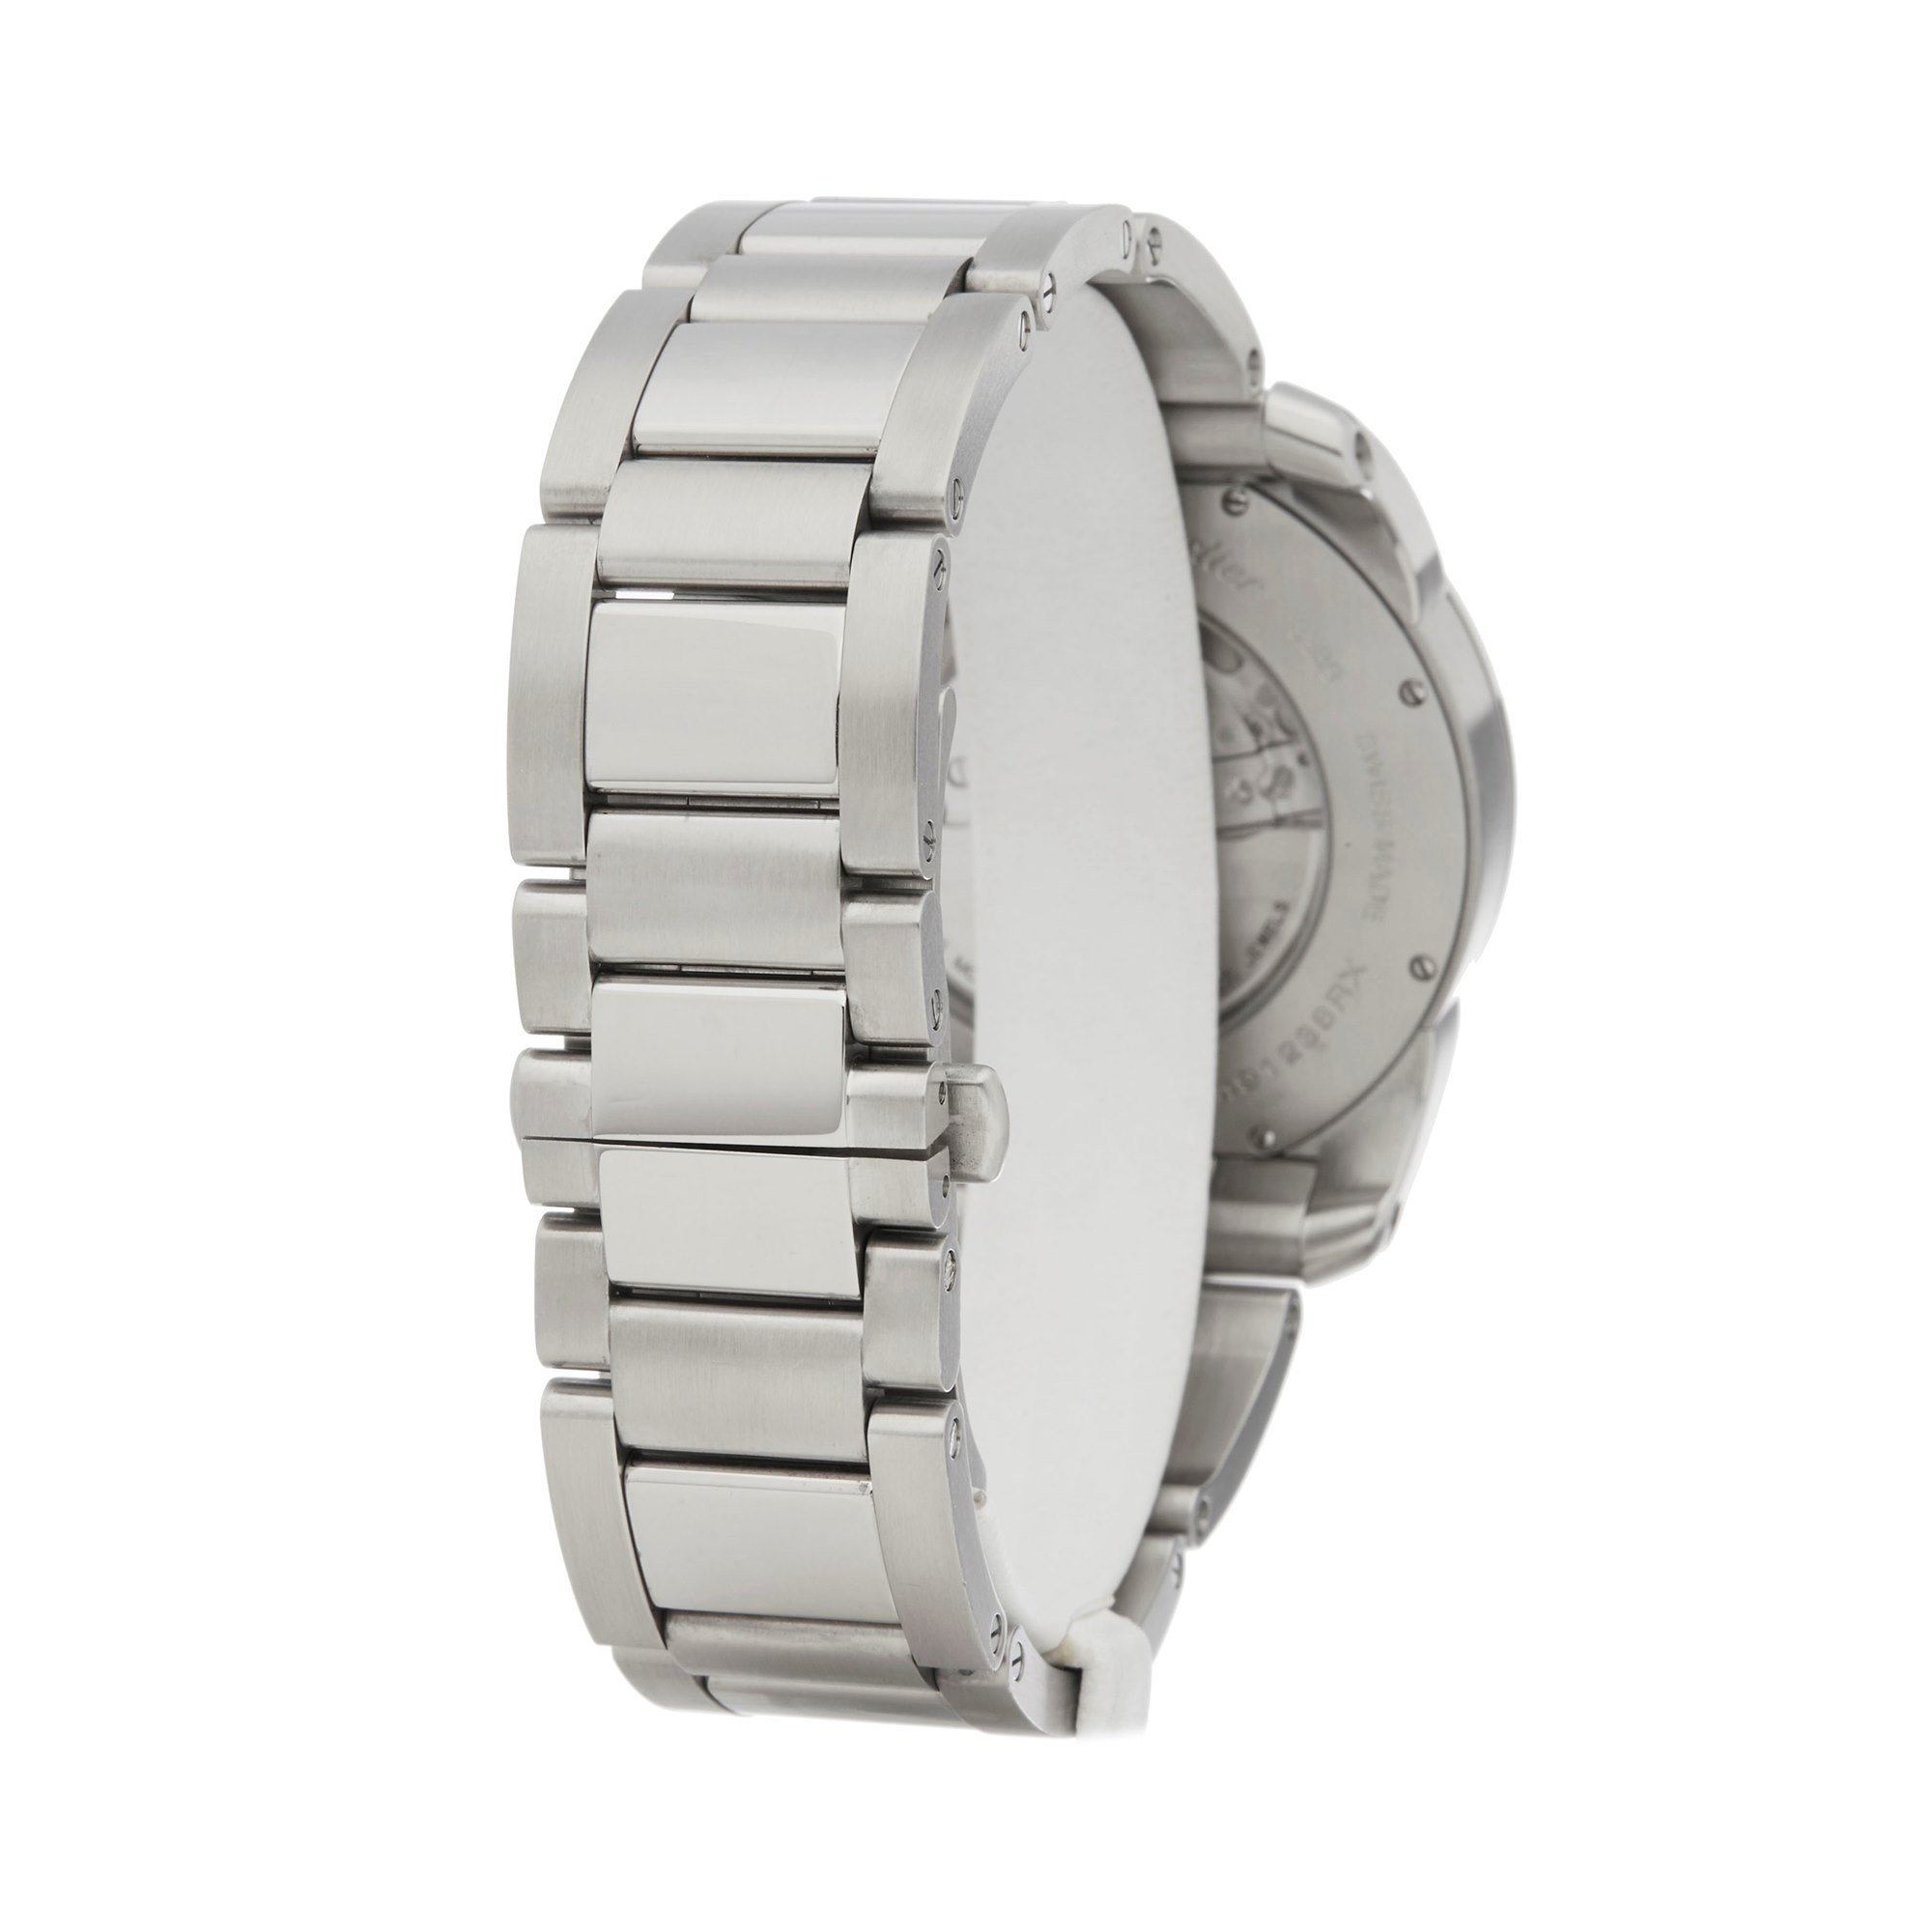 Cartier Calibre Stainless Steel W7100037 or 3398